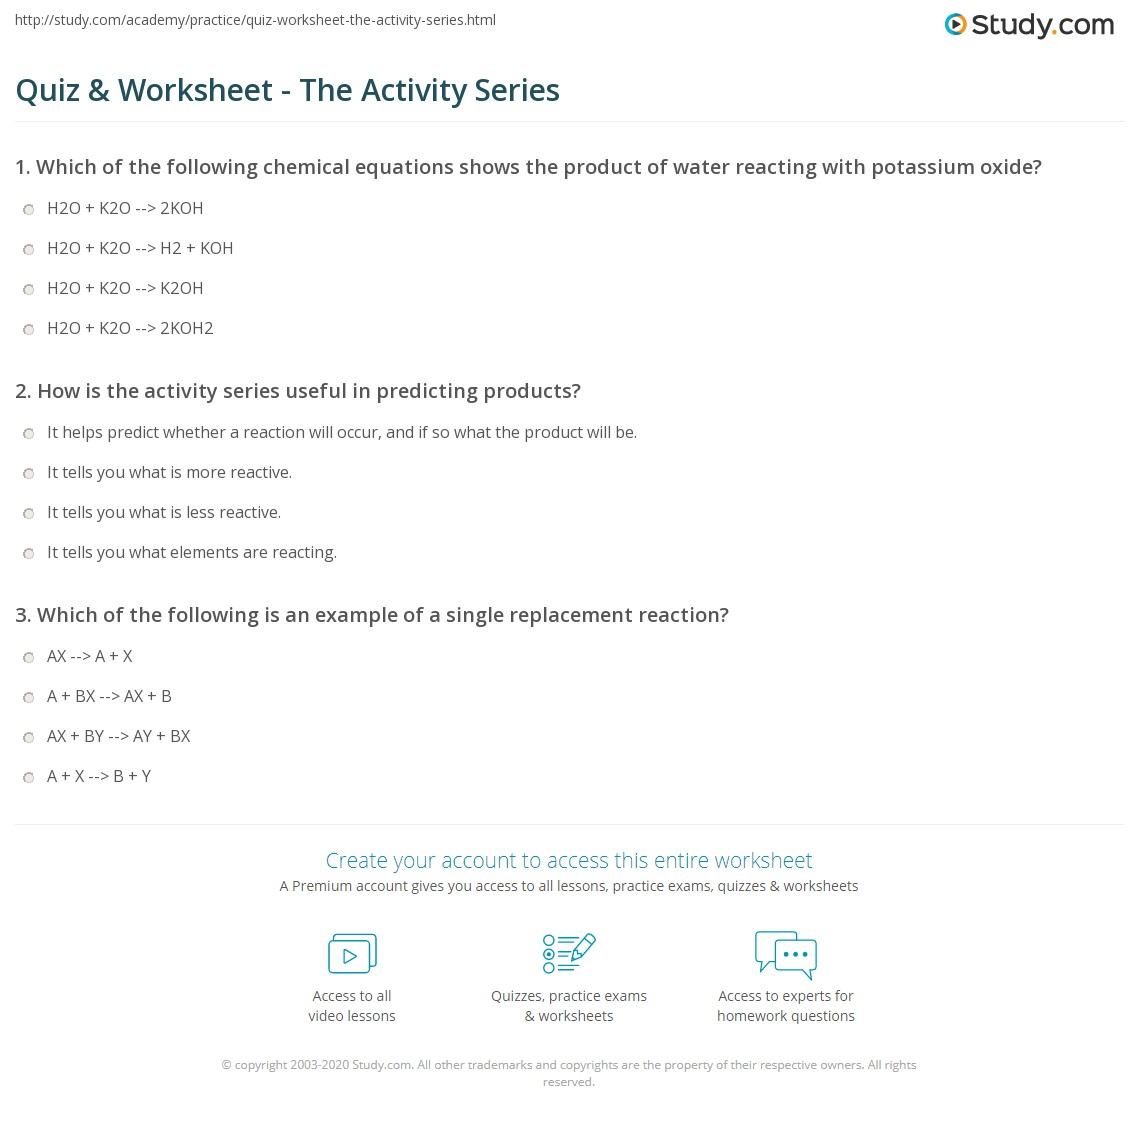 Aldiablosus  Picturesque Quiz Amp Worksheet  The Activity Series  Studycom With Magnificent Print The Activity Series Predicting Products Of Single Displacement Reactions Worksheet With Delightful Grade School Worksheets Also Math Worksheets Distributive Property In Addition Cutting Worksheets For Kindergarten And Letter R Tracing Worksheets As Well As Free Printable Worksheets For High School Additionally Writing Worksheets For Kindergarten Free From Studycom With Aldiablosus  Magnificent Quiz Amp Worksheet  The Activity Series  Studycom With Delightful Print The Activity Series Predicting Products Of Single Displacement Reactions Worksheet And Picturesque Grade School Worksheets Also Math Worksheets Distributive Property In Addition Cutting Worksheets For Kindergarten From Studycom